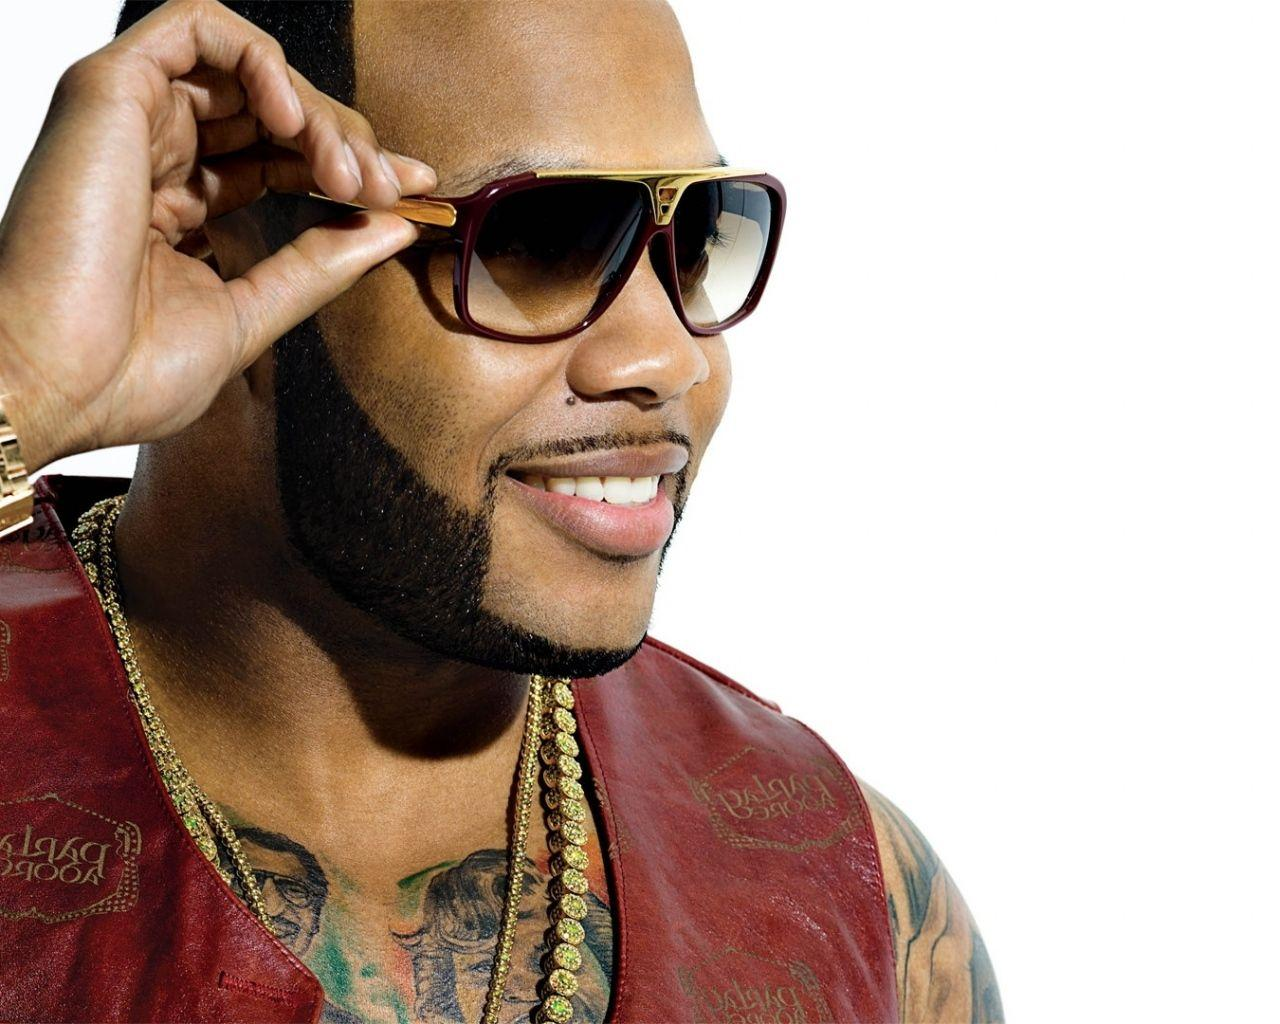 Download Wallpaper 1280x1024 Flo rida, Glasses, Smile, Watches ...